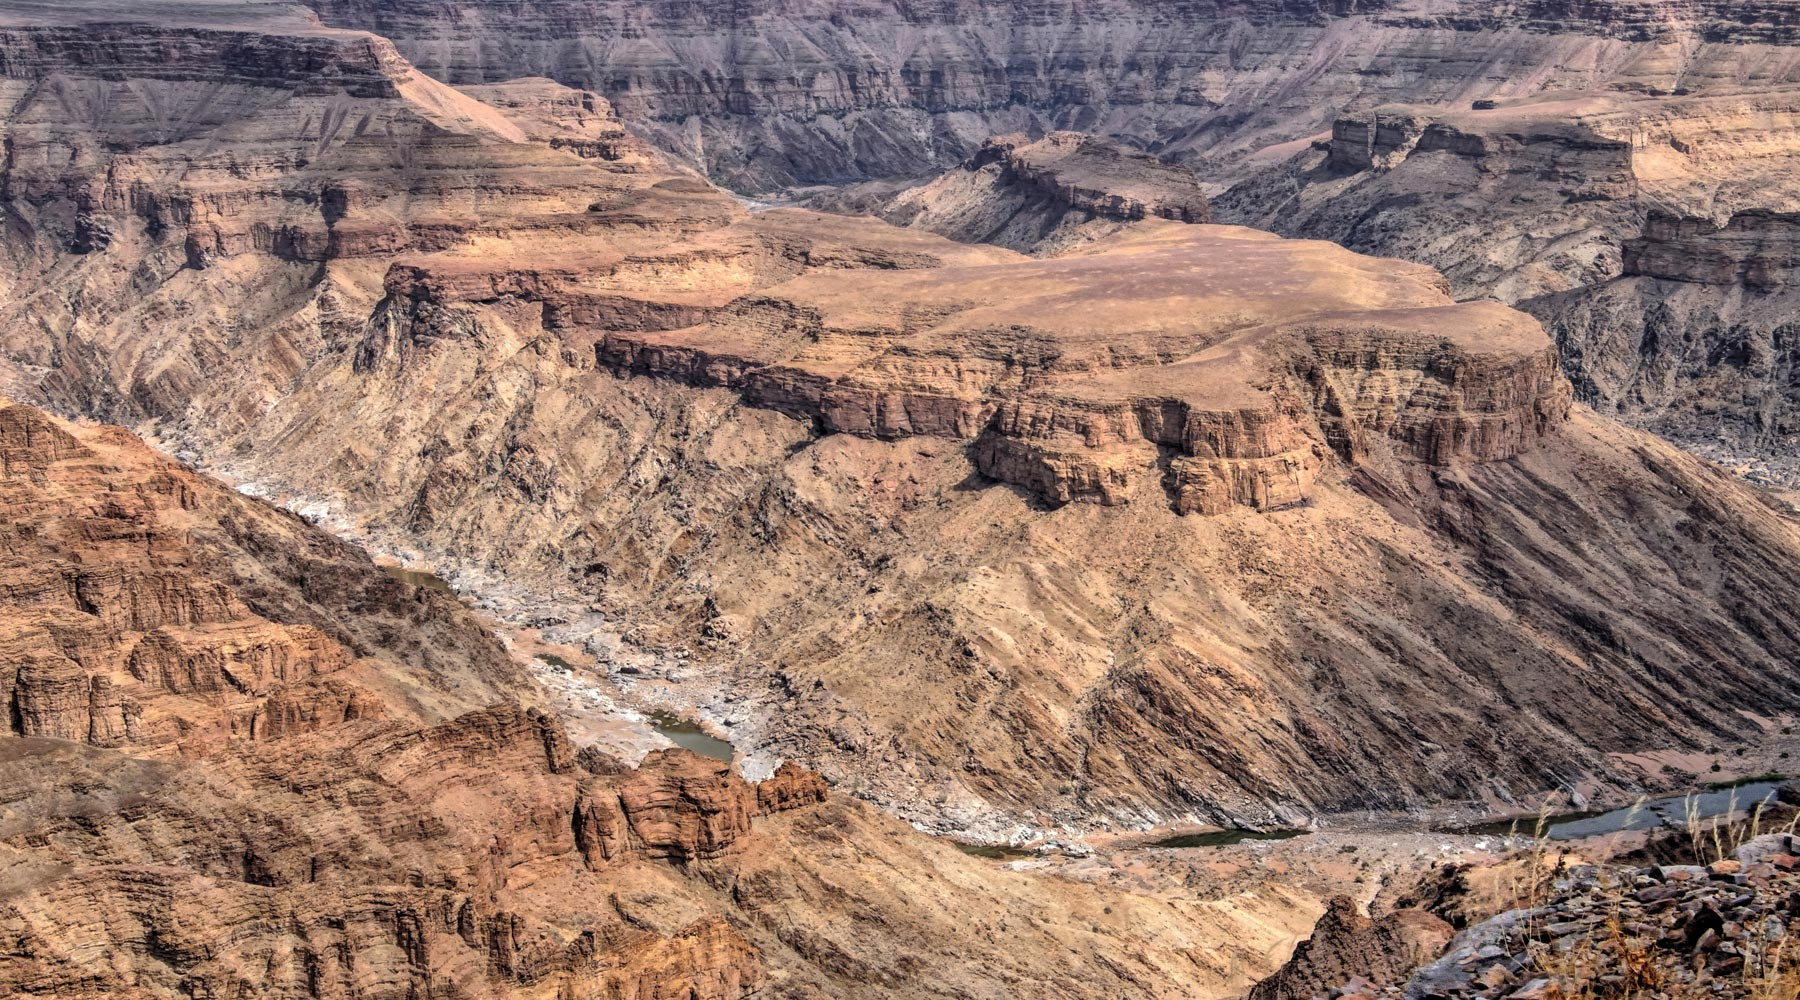 Fish River Canyon in Namibia – The World's Second Largest Canyon